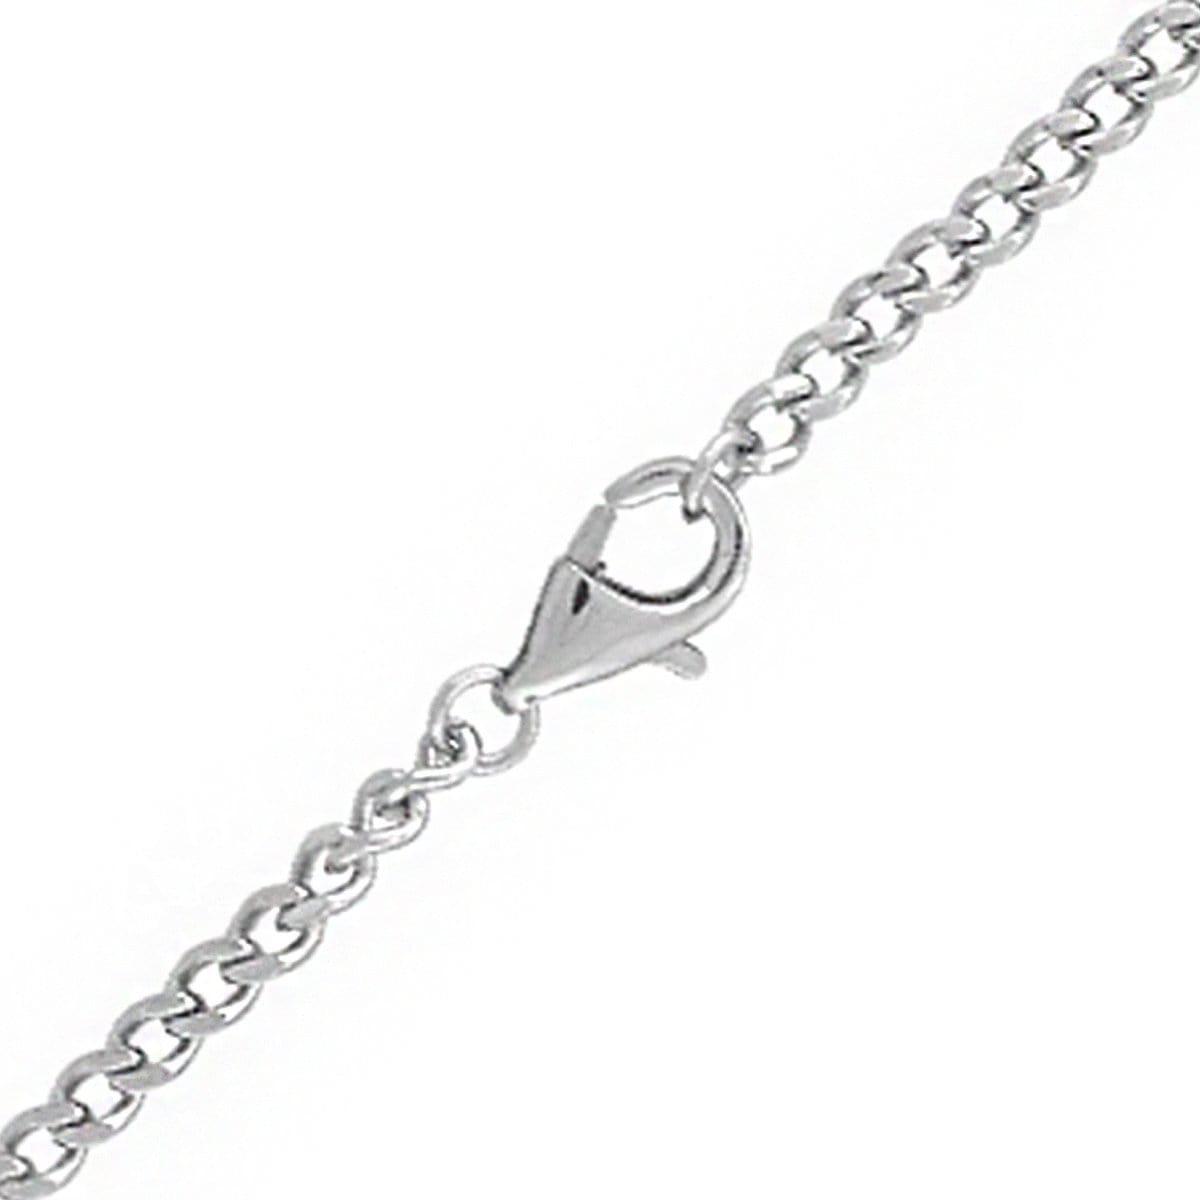 Silver Stainless Steel 4 mm Flat Curb Polished Chain